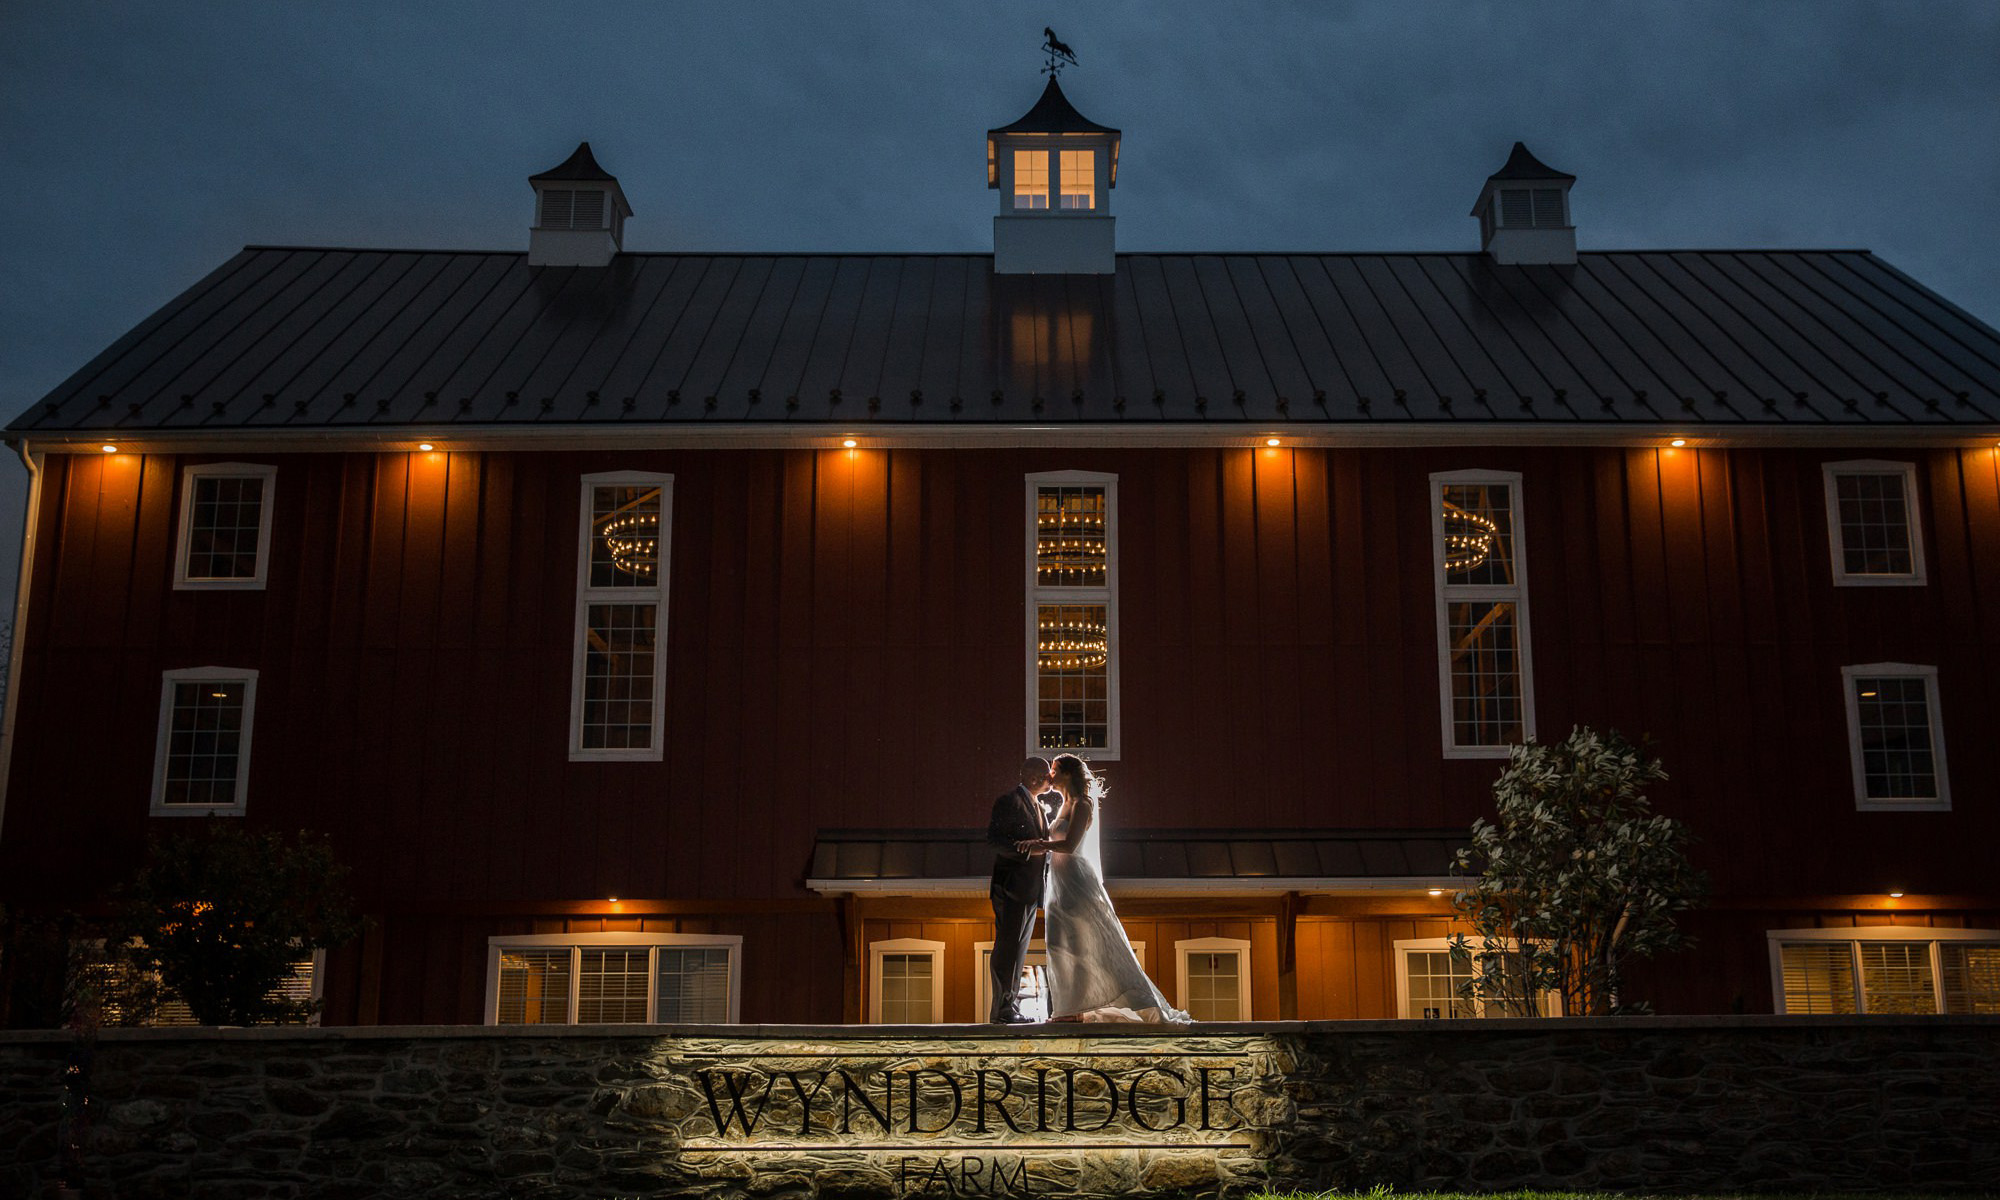 york county wedding venue-wyndridge farm night photo